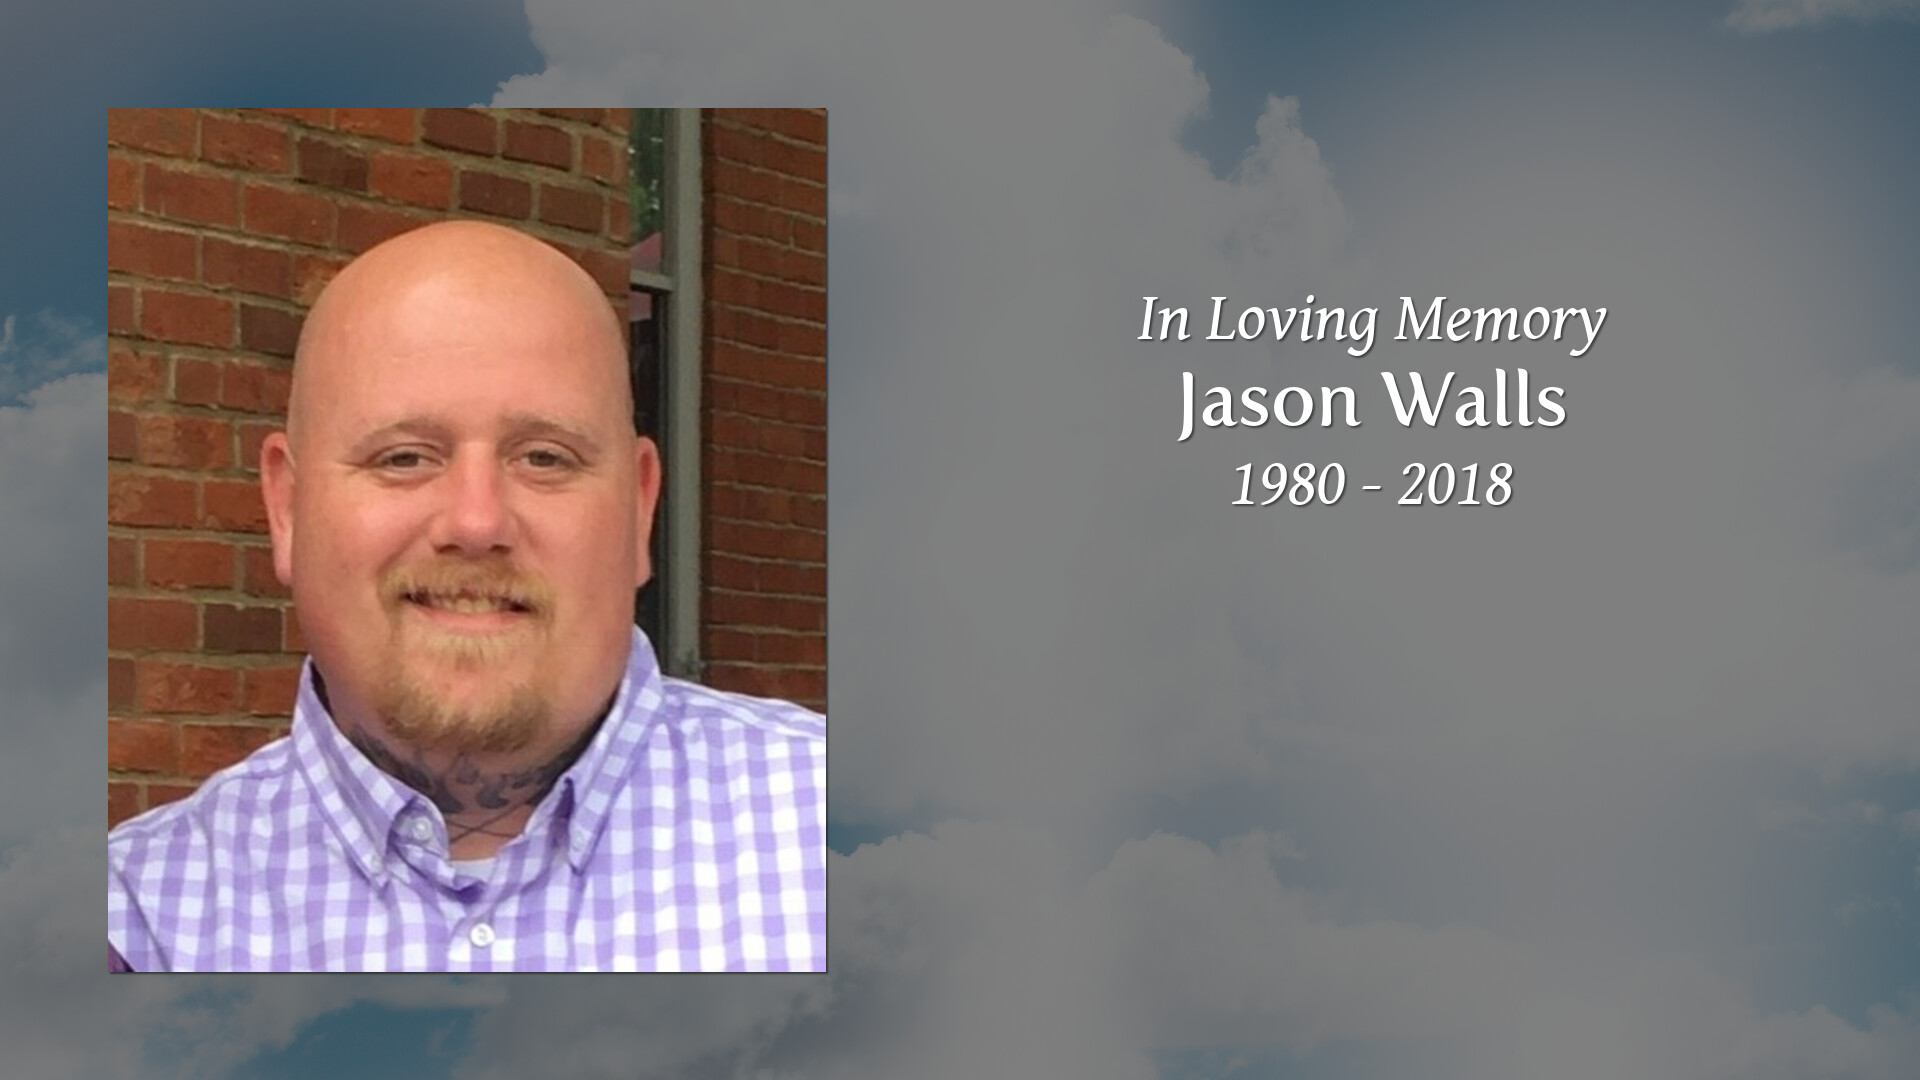 Newcomer Family Obituaries - Jason Paul Walls 1980 - 2018 - Newcomer  Cremations, Funerals & Receptions.